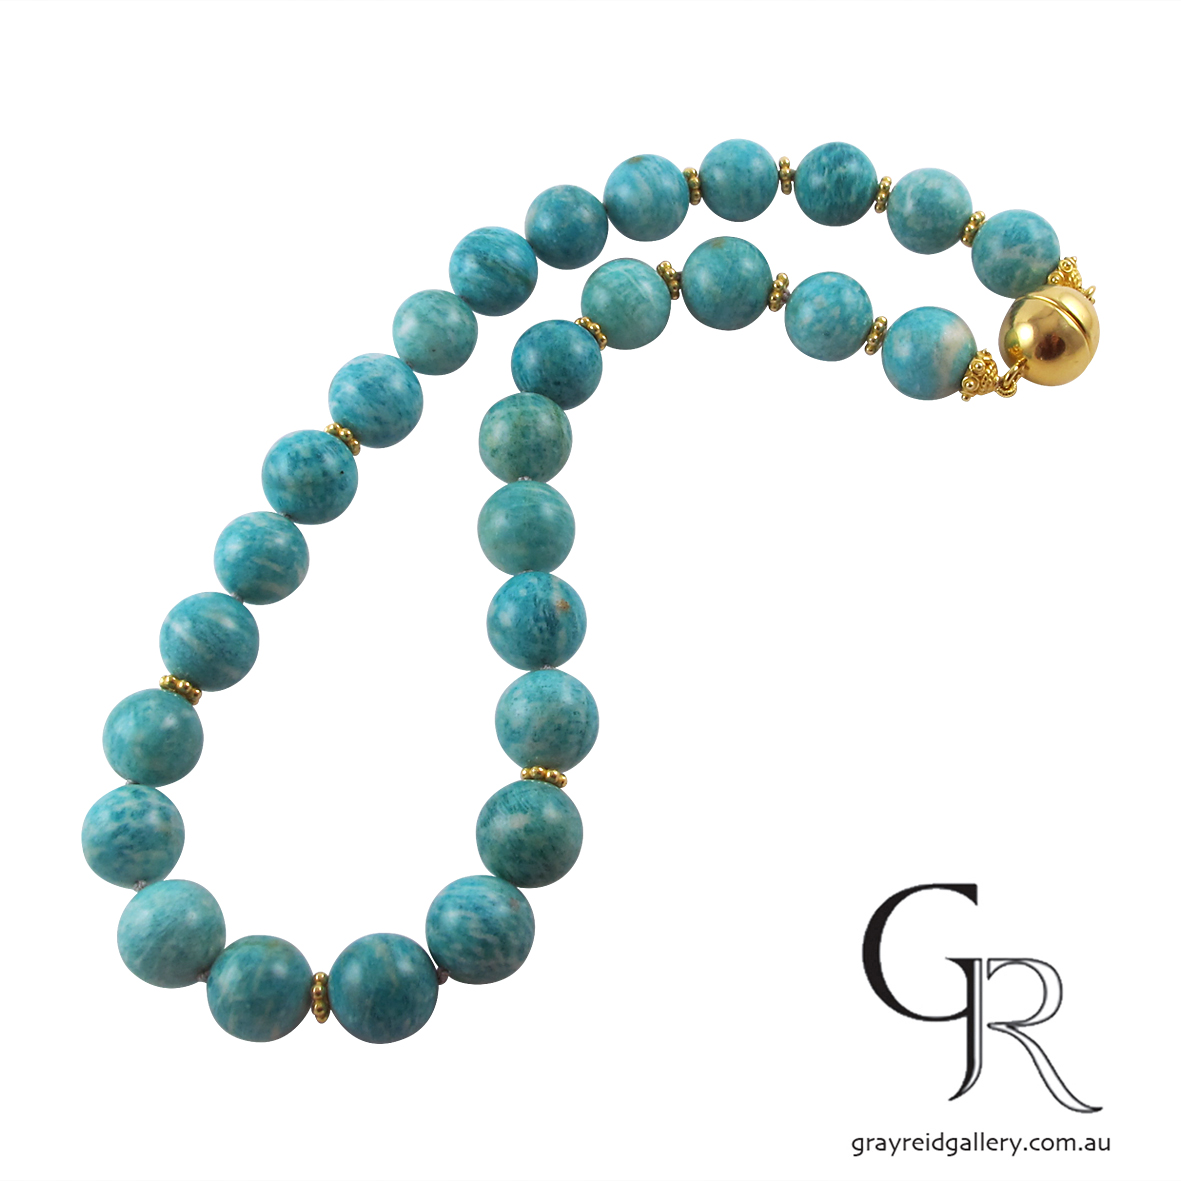 Natural Amazonite Beads With Gold Clasp